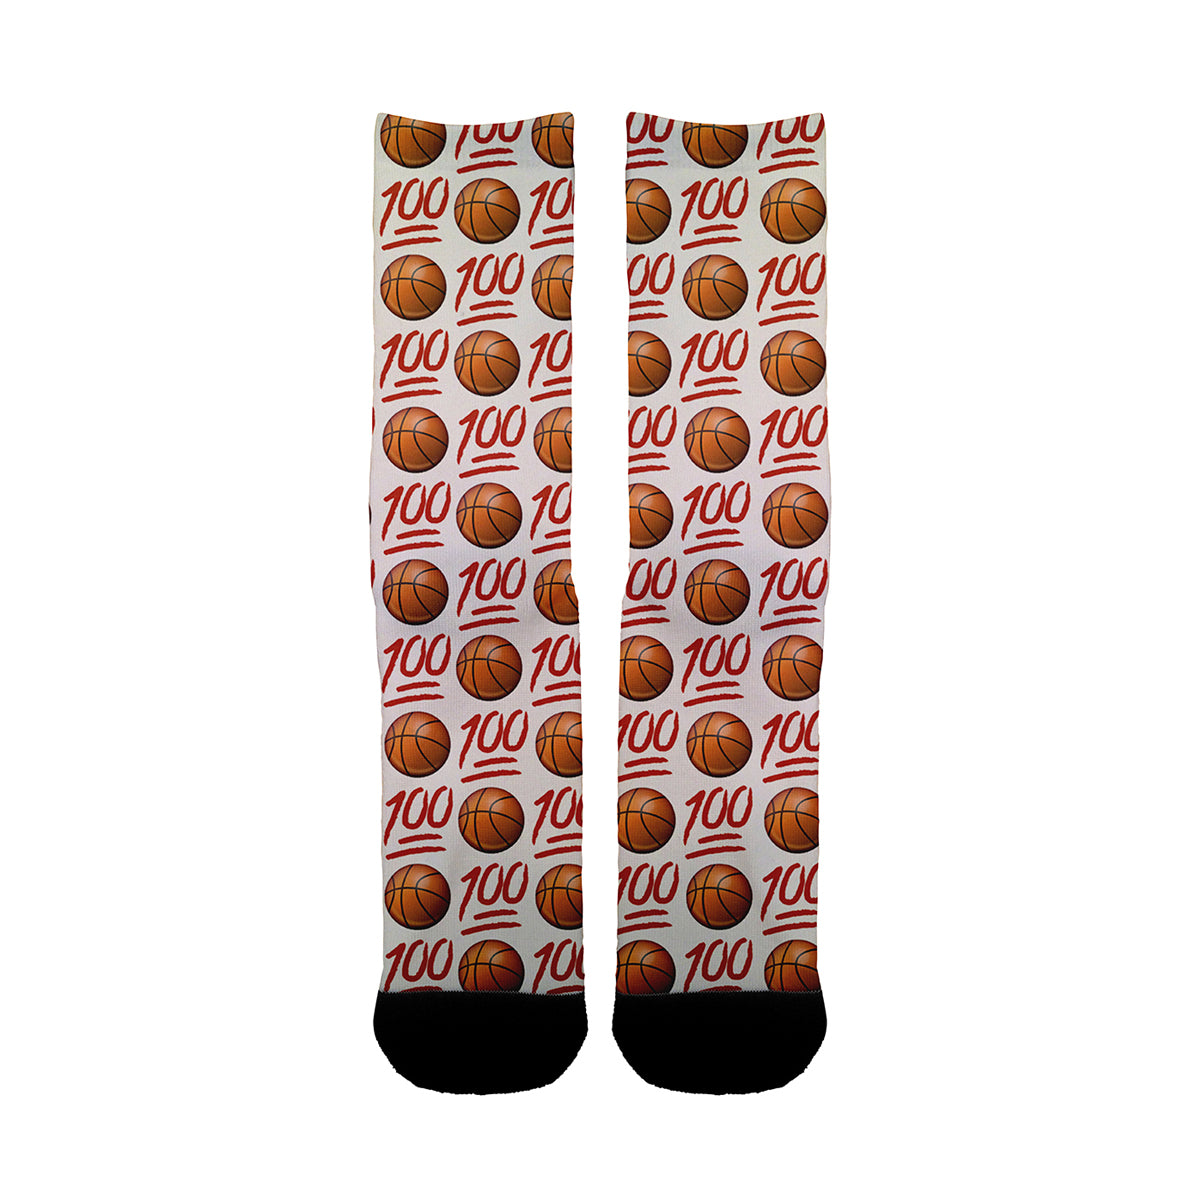 100 Basket ball on White Socks - Shweeet